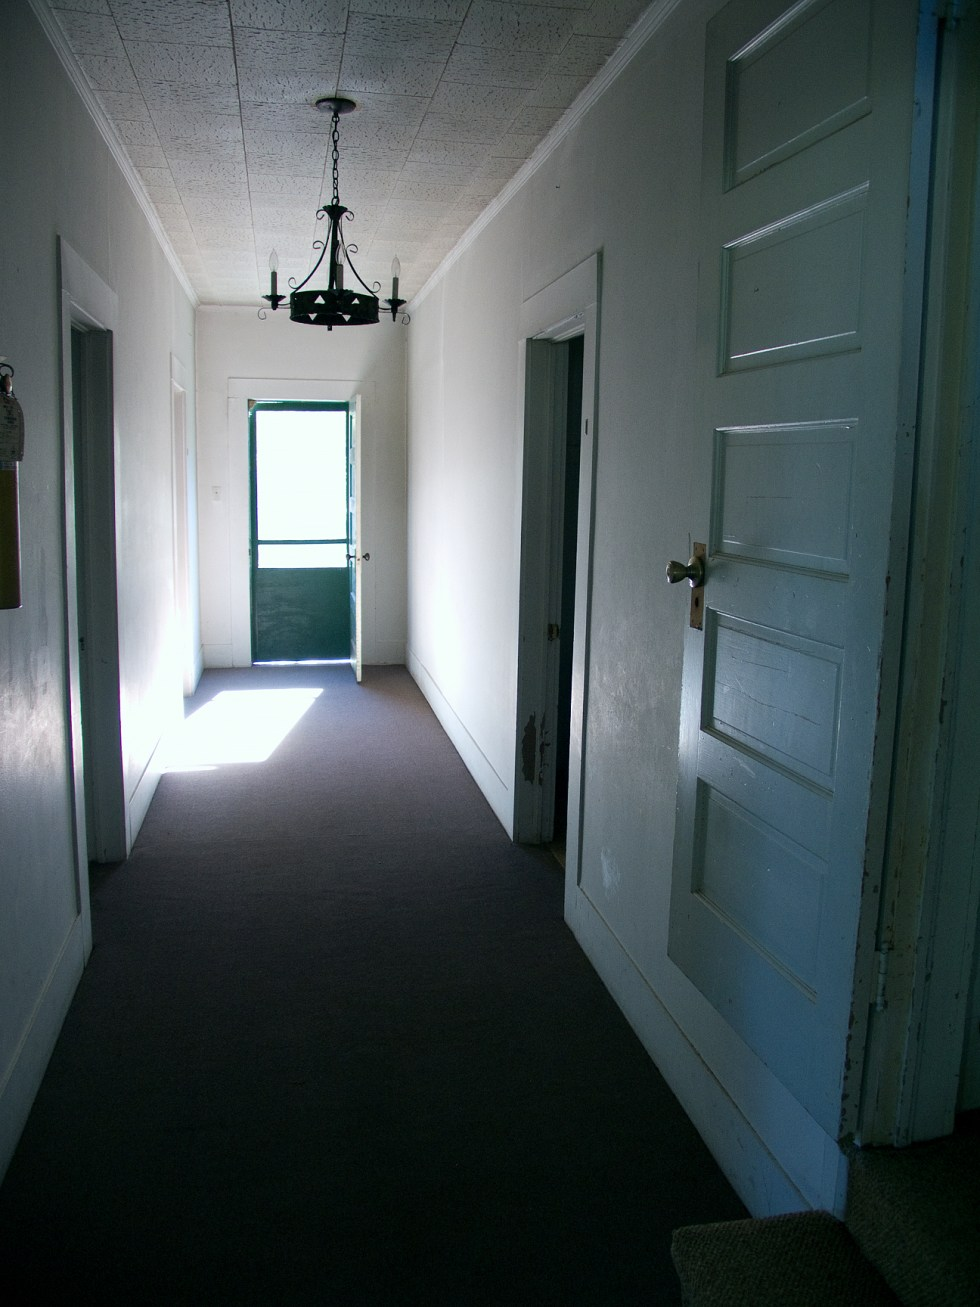 (above) This hallway leads from the living area. To the immediate right, you will see a step leading up to a five panel door which leads to the stair to the second floor. Now why would there be a need to close off the second floor? The ceiling's acoustical tile can't be original.